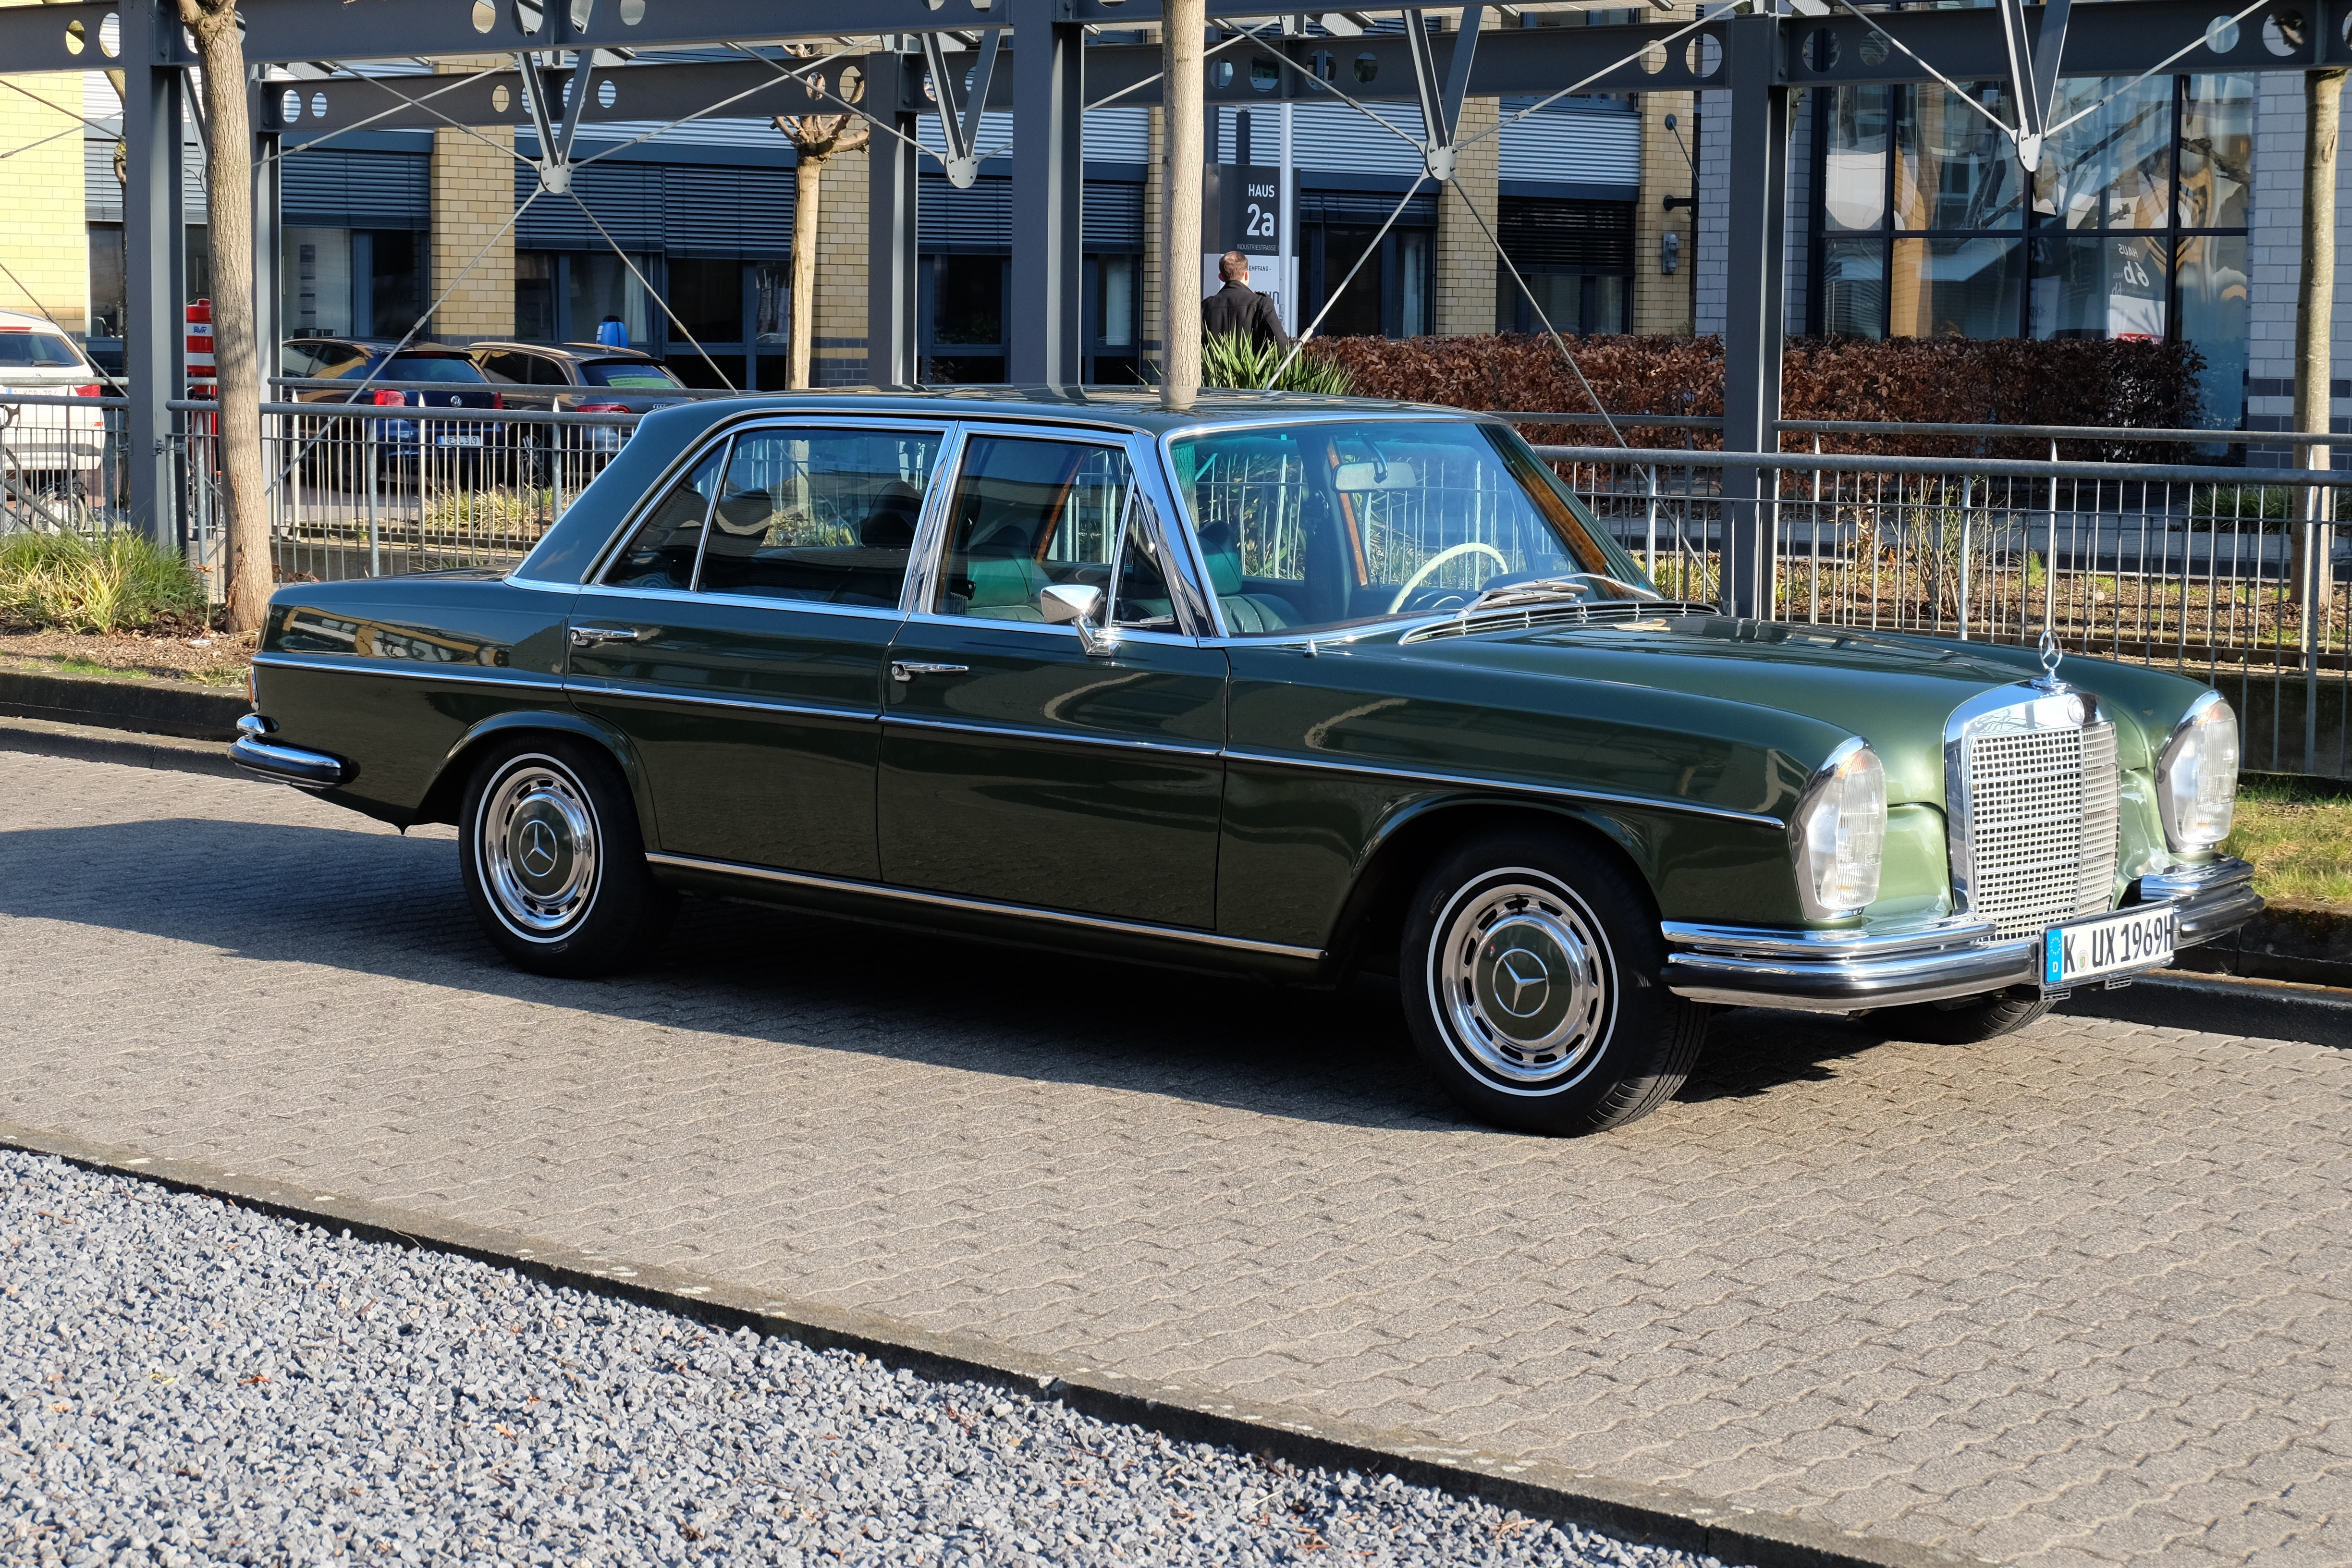 1972 Mercedes-Benz S-Class - 300 SEL 4.5 W109 one of the Best ...